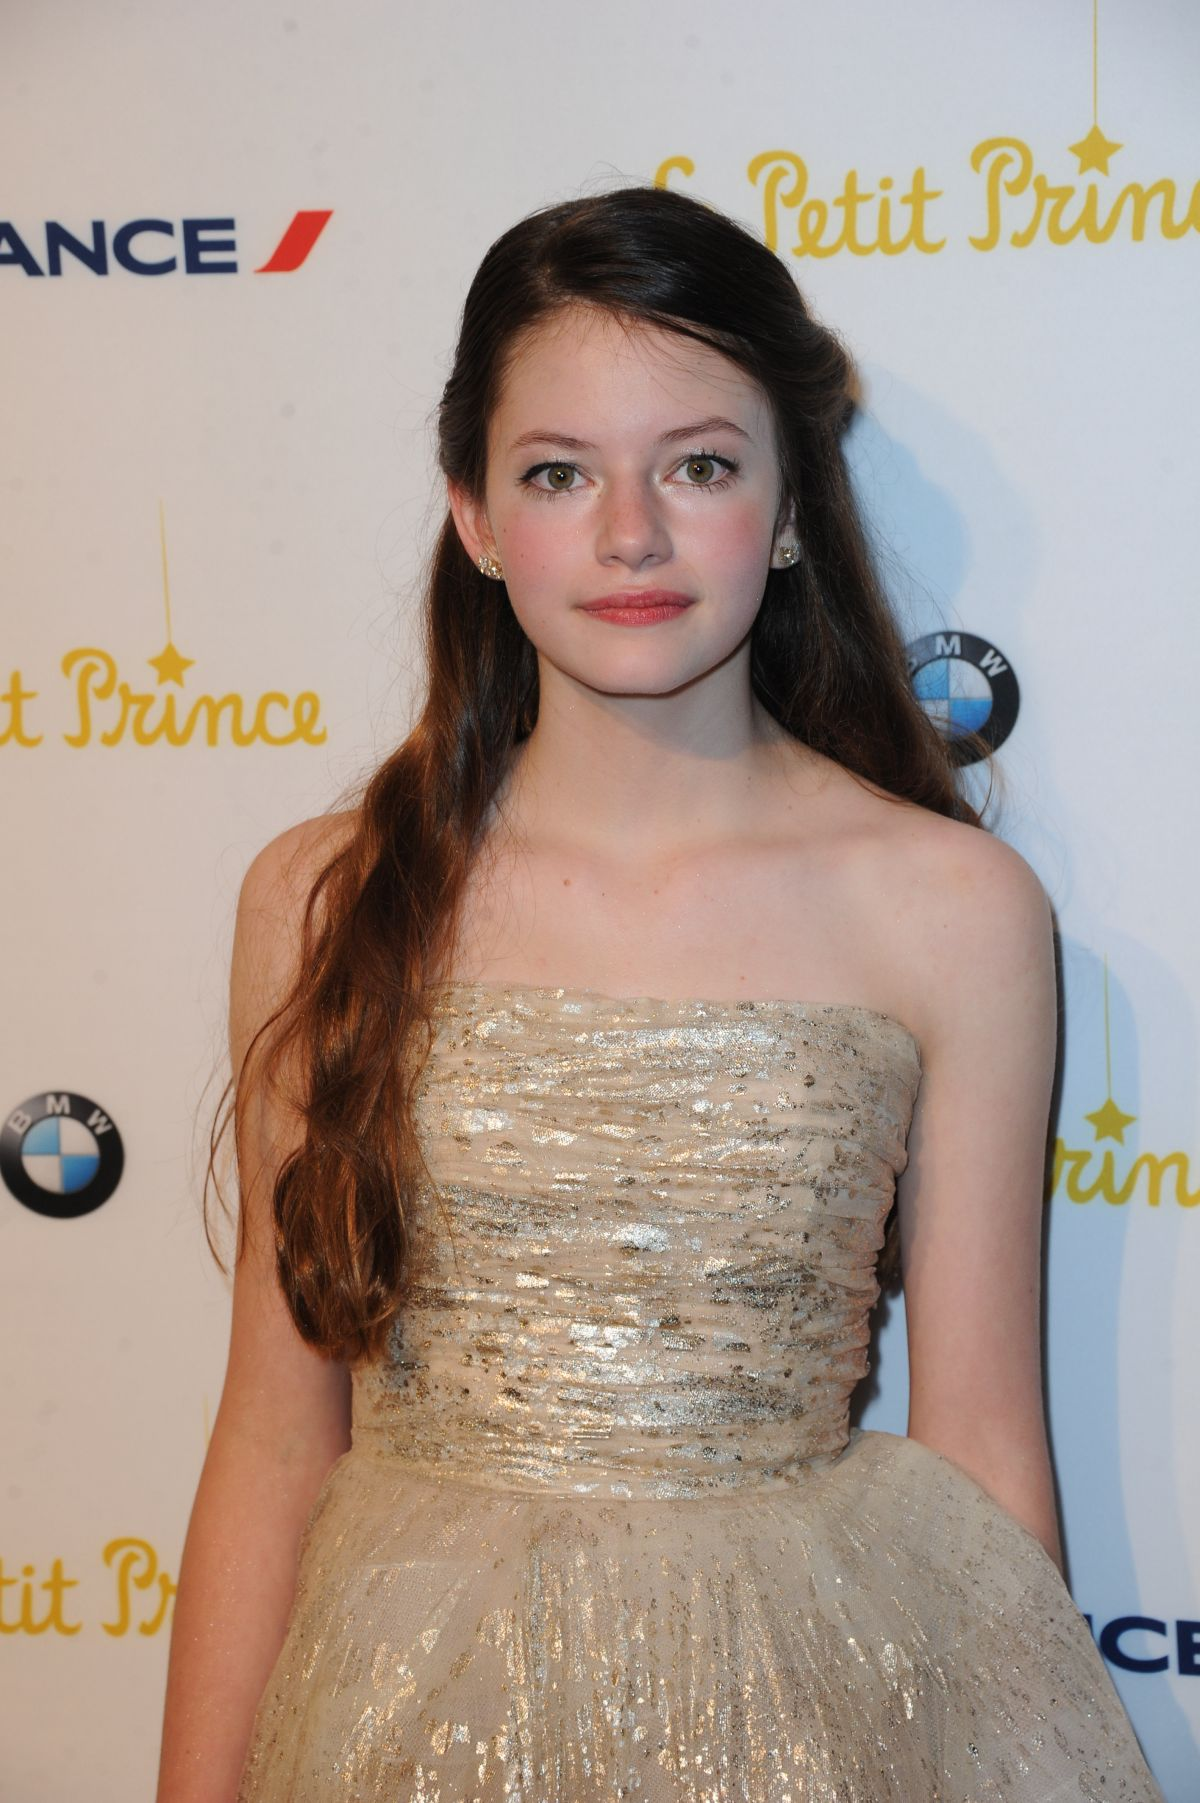 MACKENZIE FOY at The Little Prince Party in Cannes